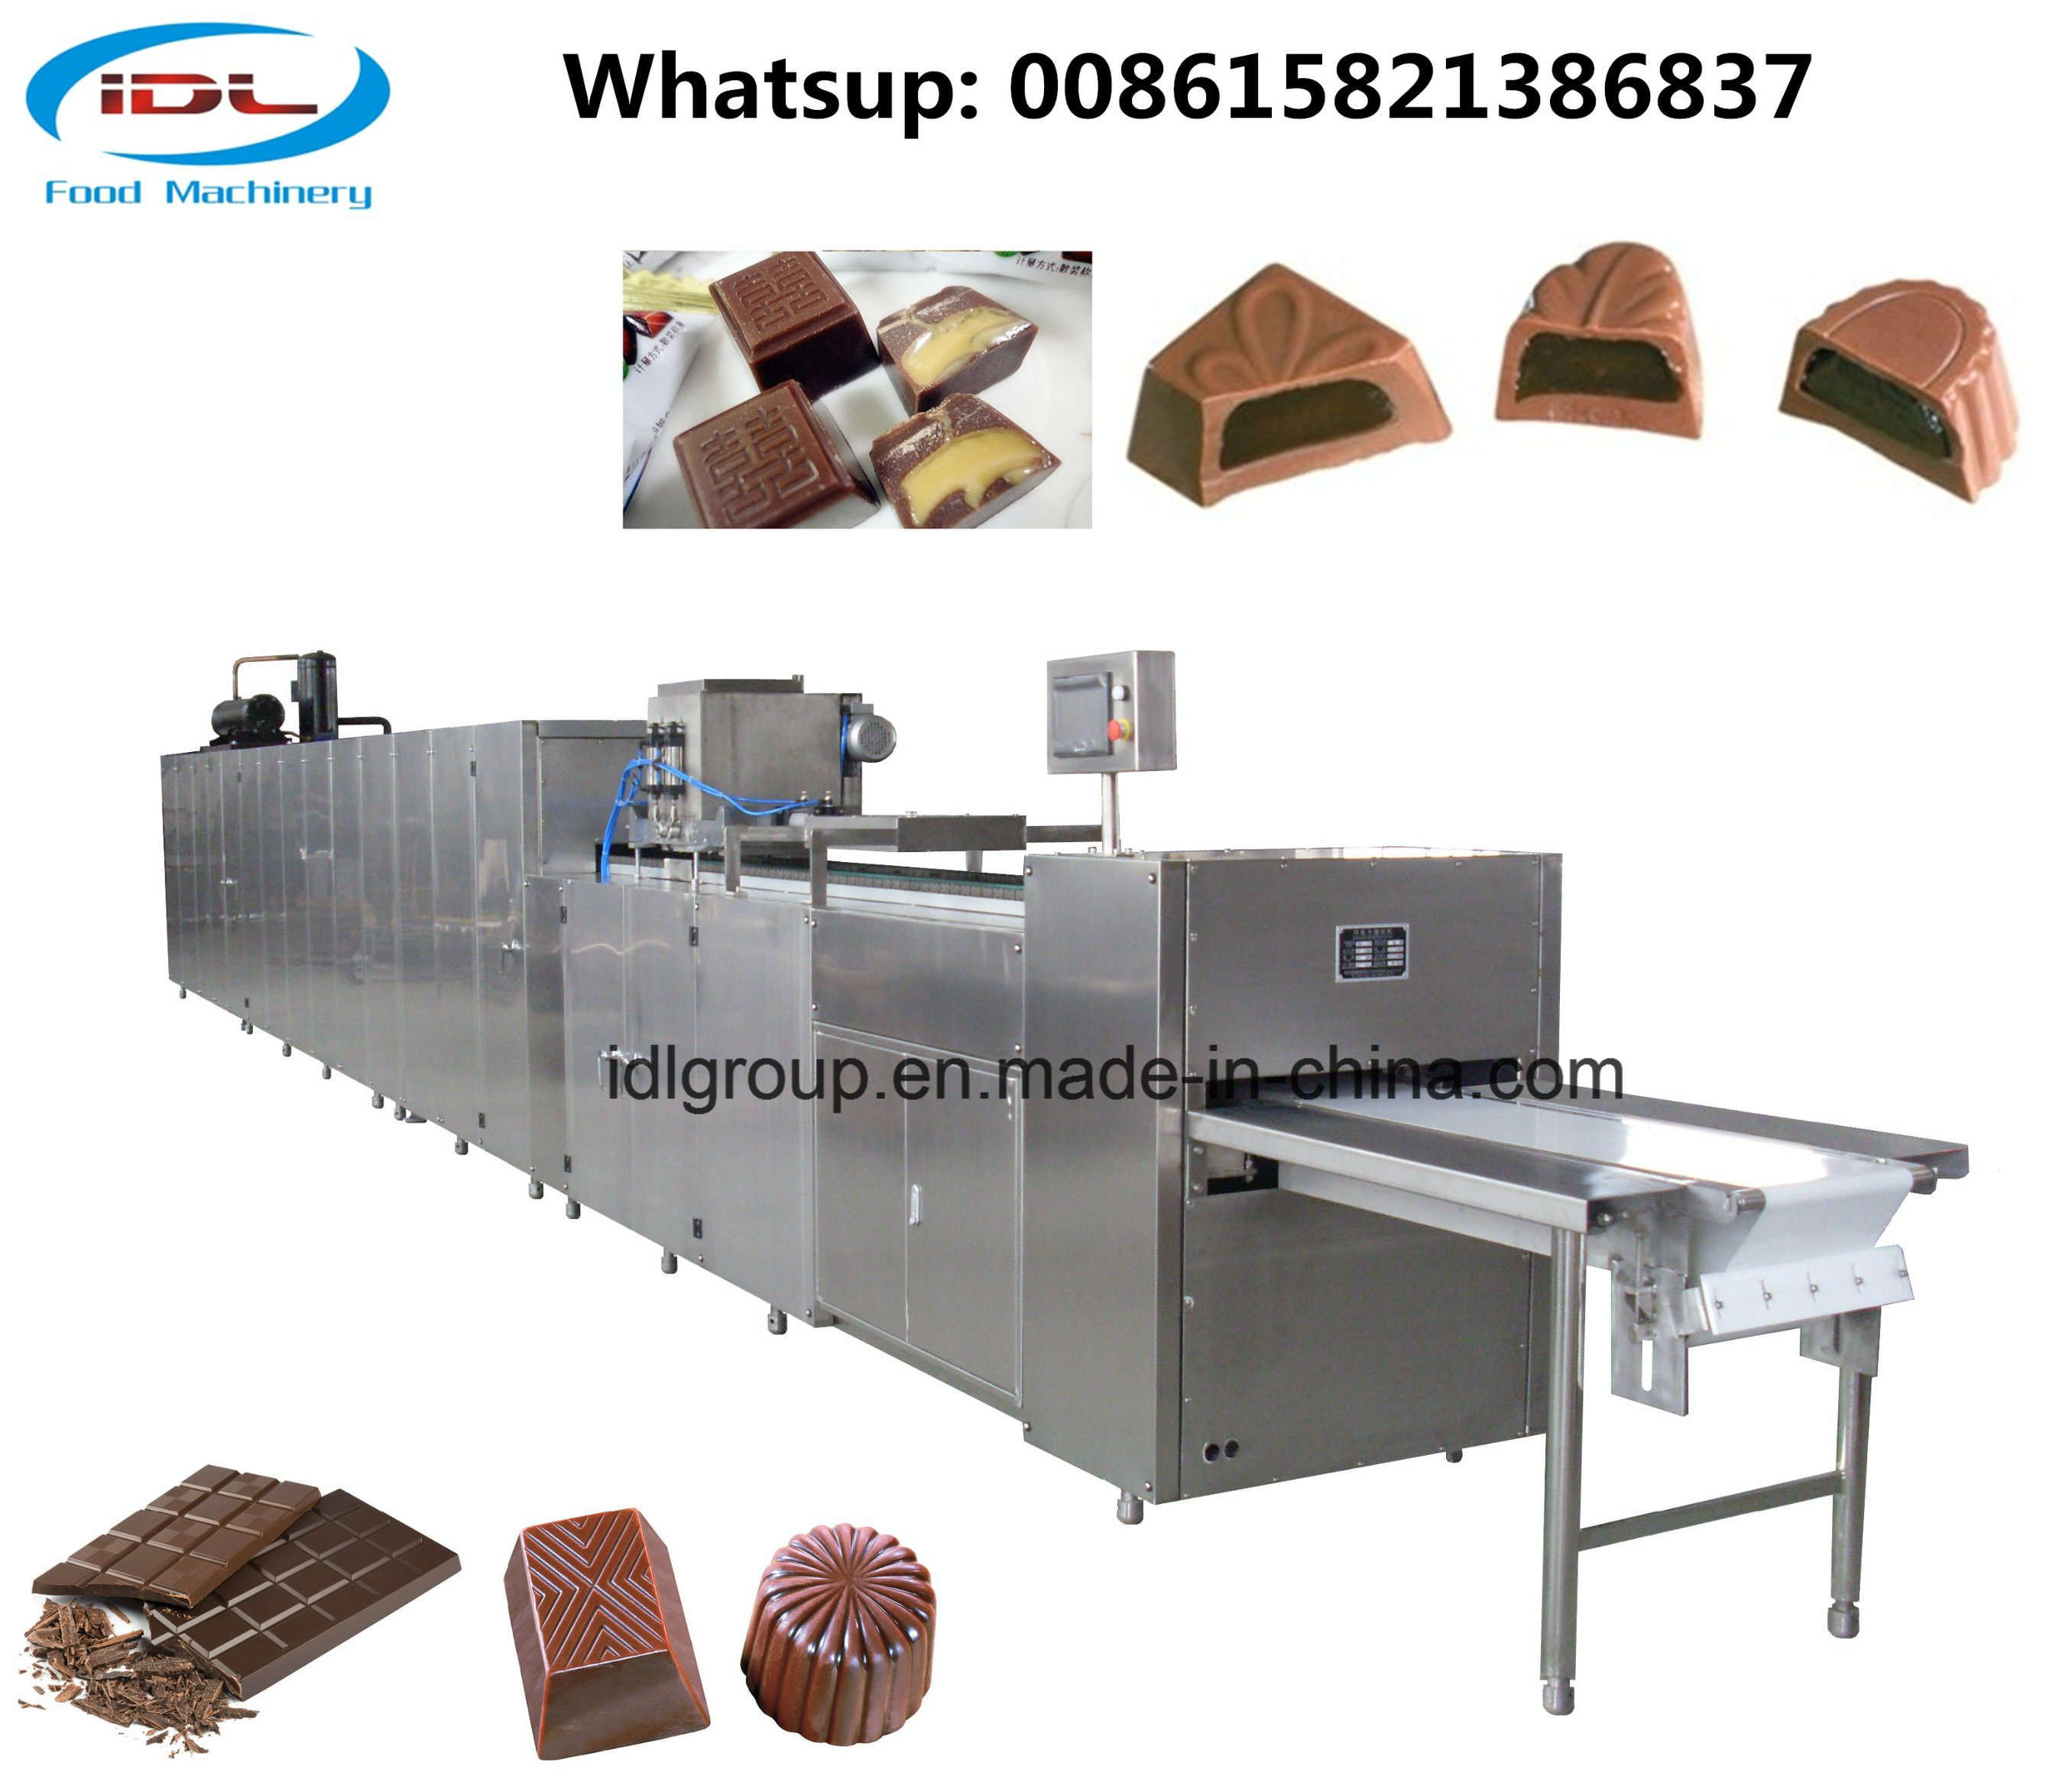 Produce manufacture confectionery pre-packaged